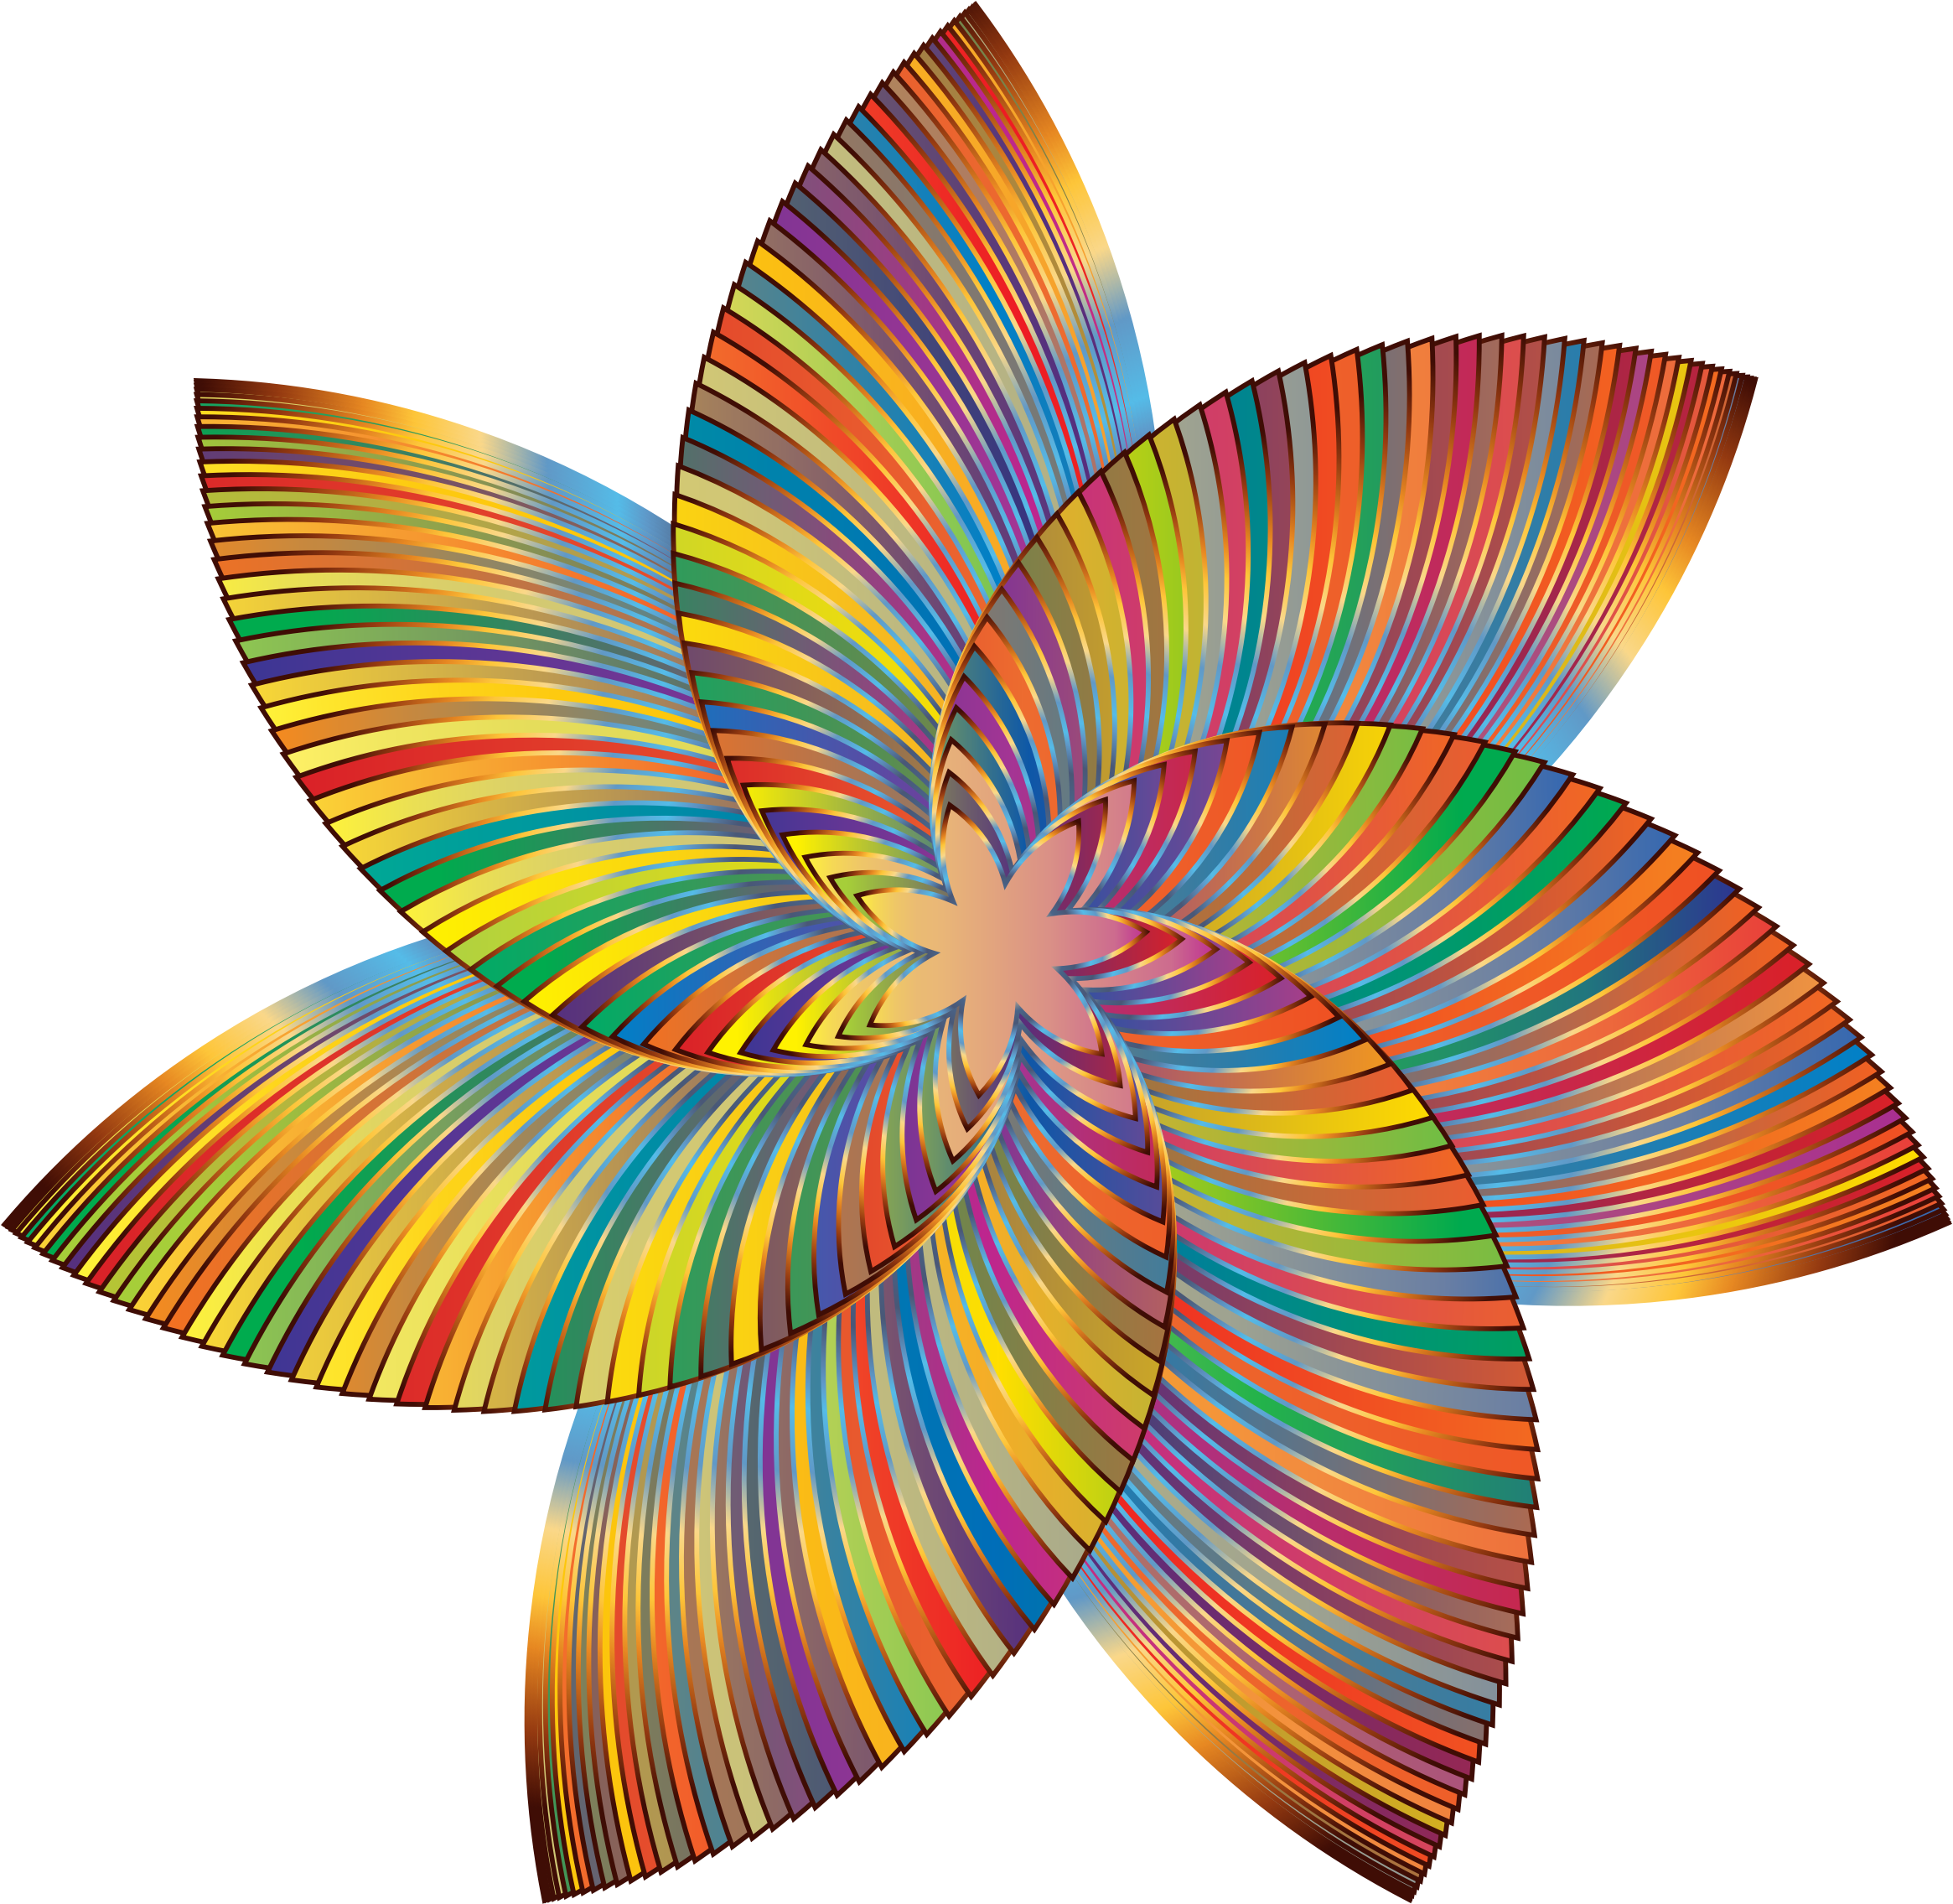 Colorful Flower Line Art 2 by GDJ